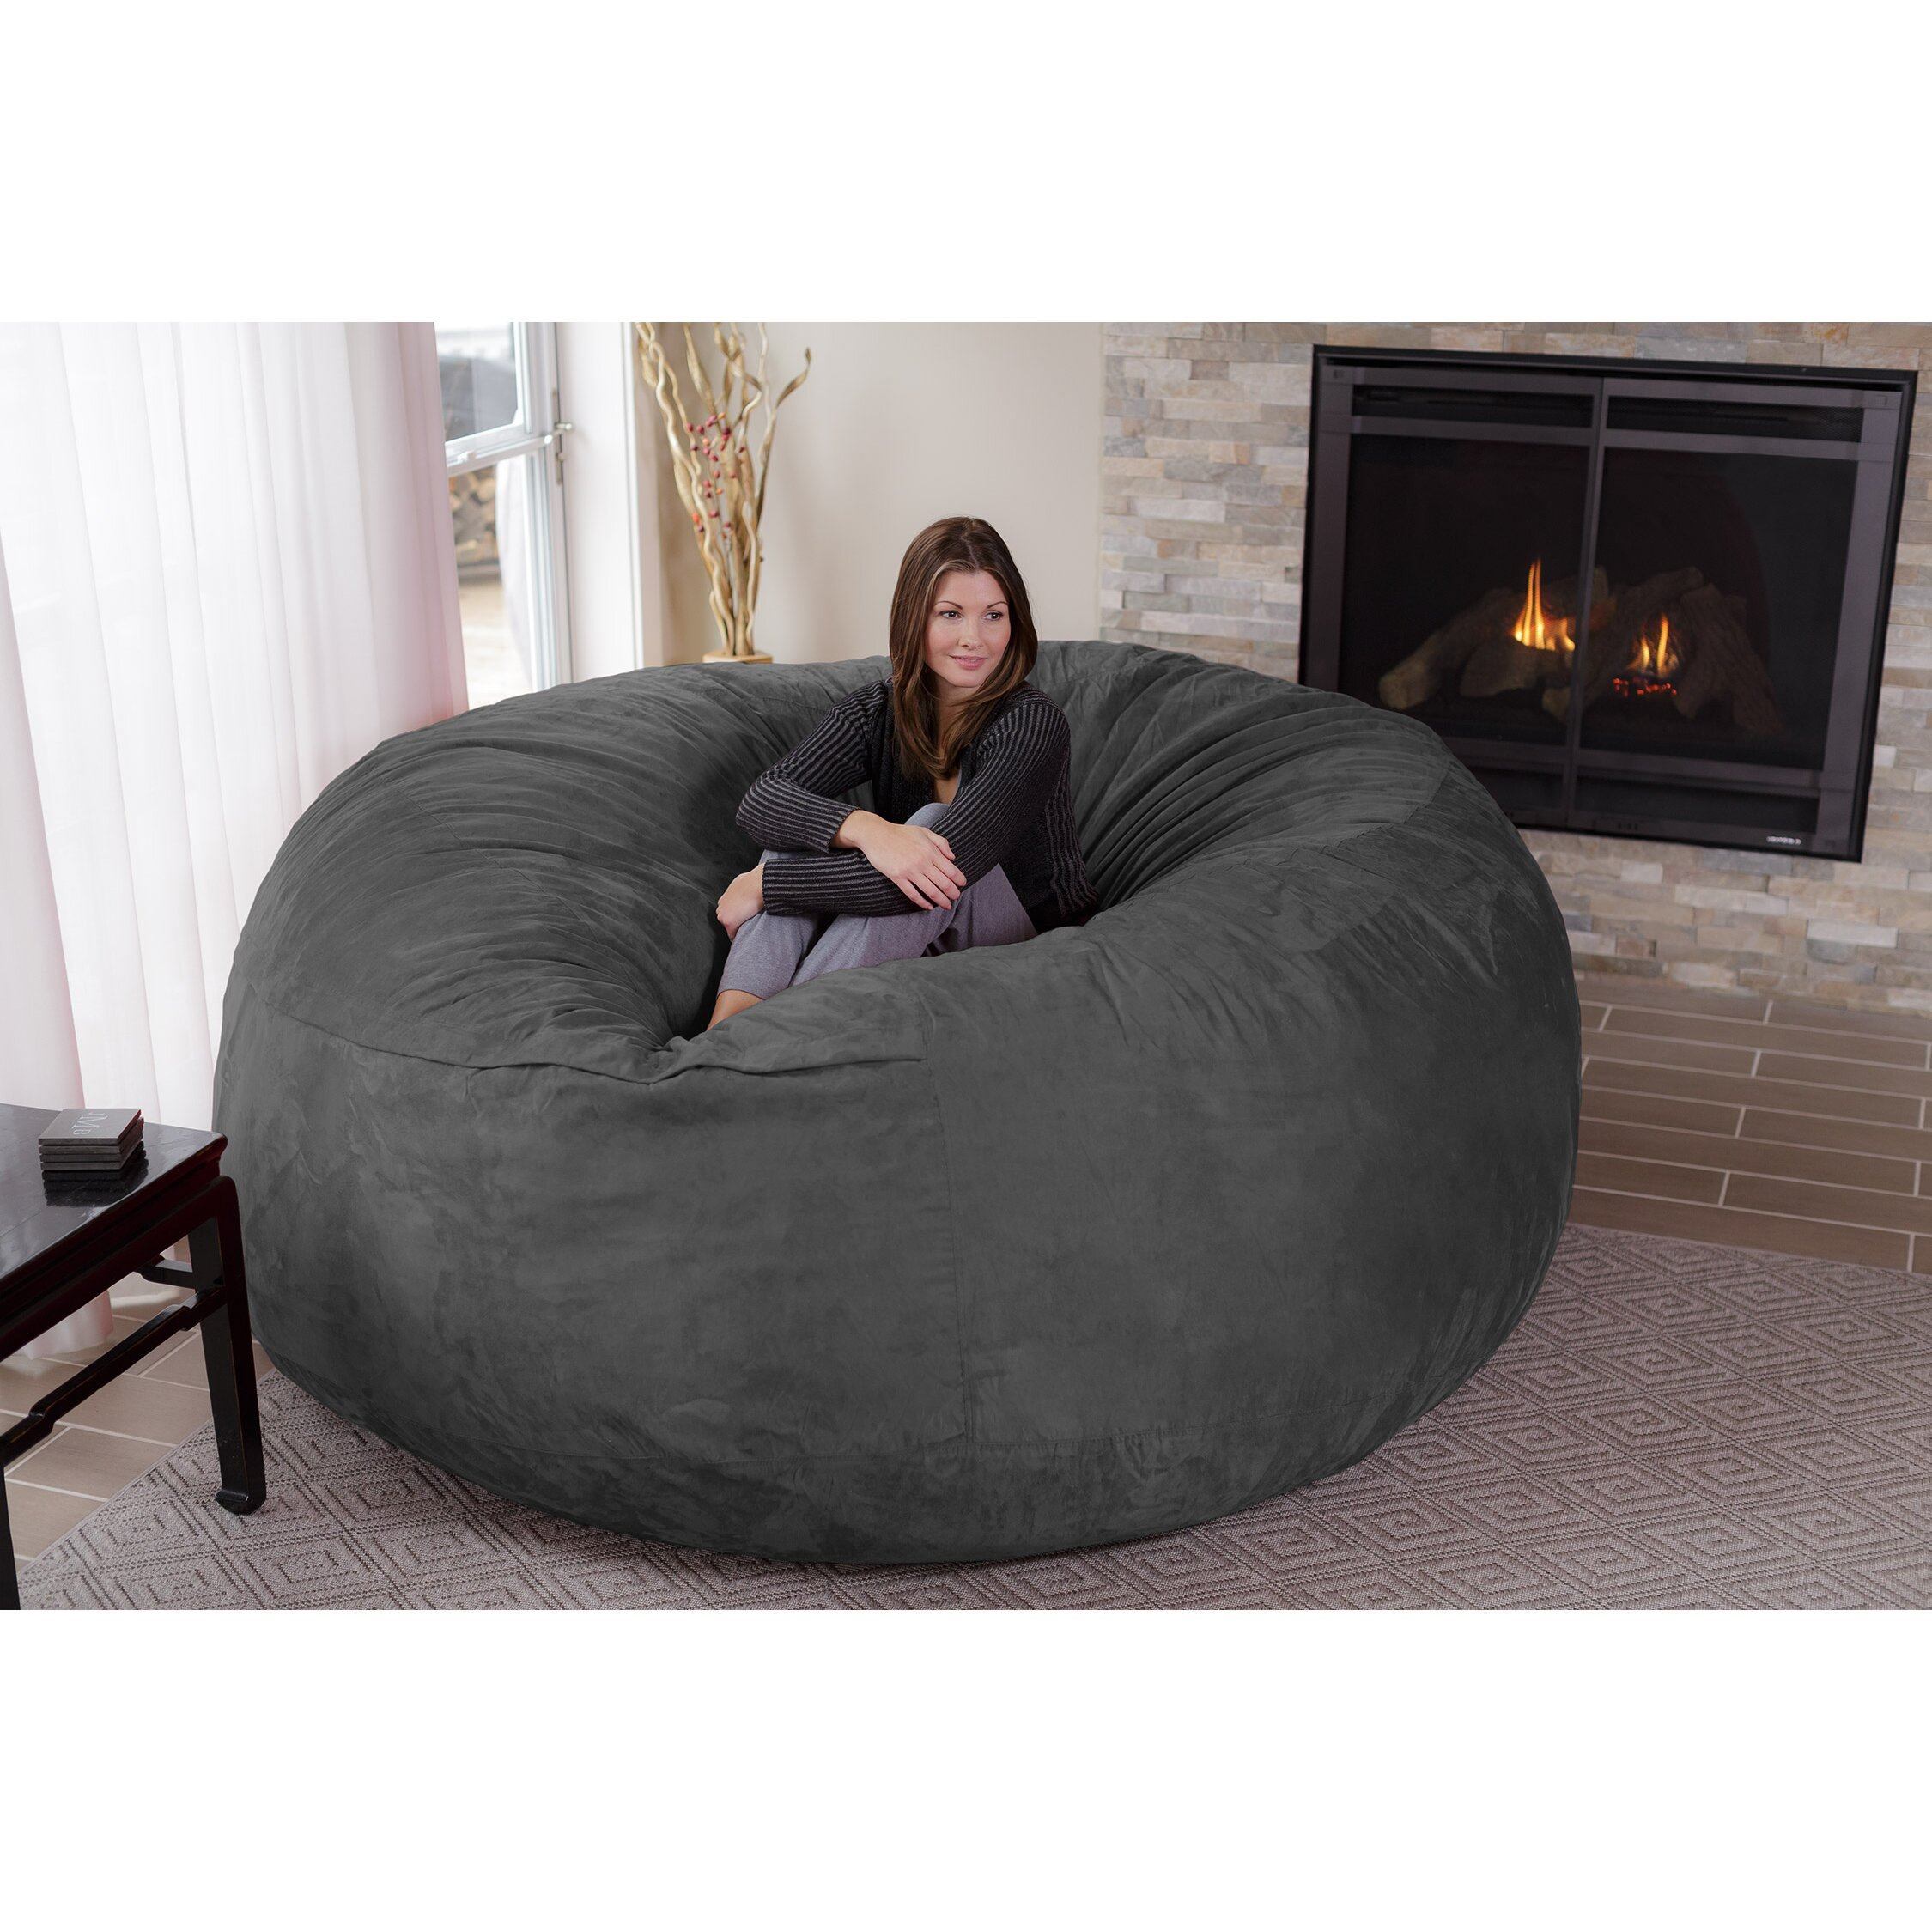 Bag Sofa Faux Leather Sofa Bed Bean Bag Chocolate Brown Giant